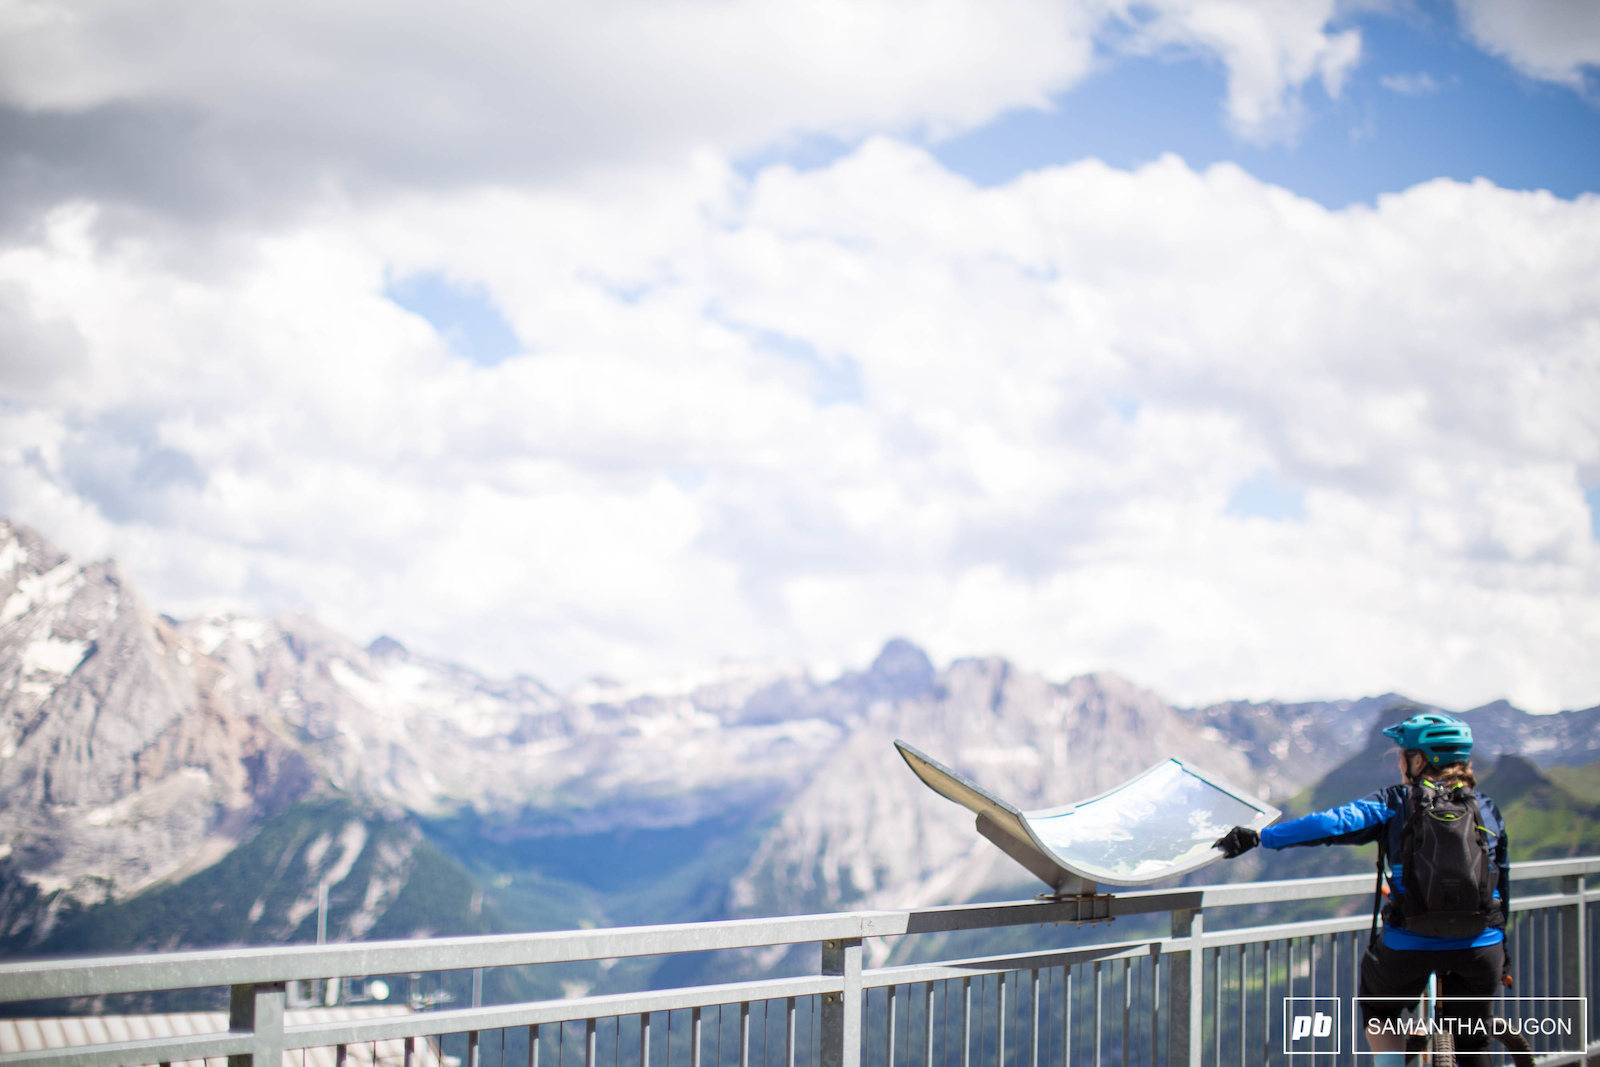 Taking some time to take in the scenery at the top of Col Rodella Dolomites.